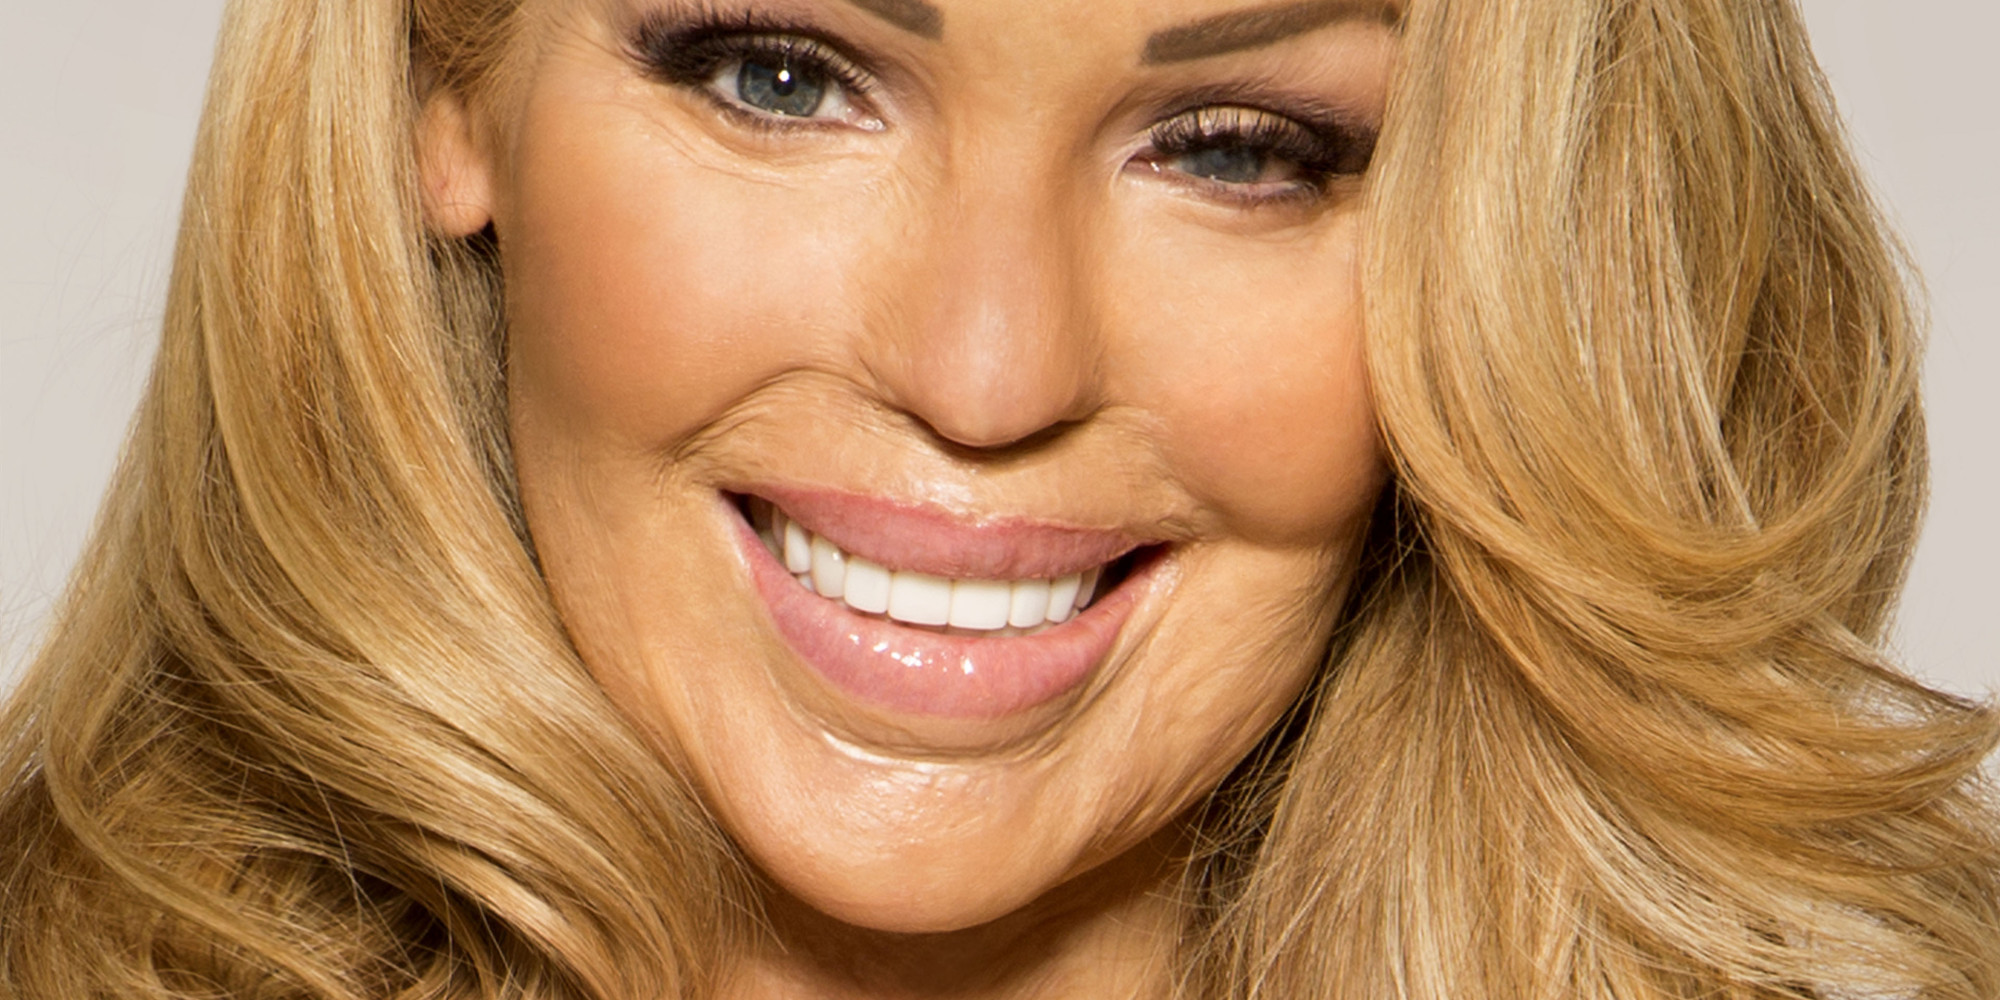 Katie Piper Now O-katie-piper-facebook.jpg